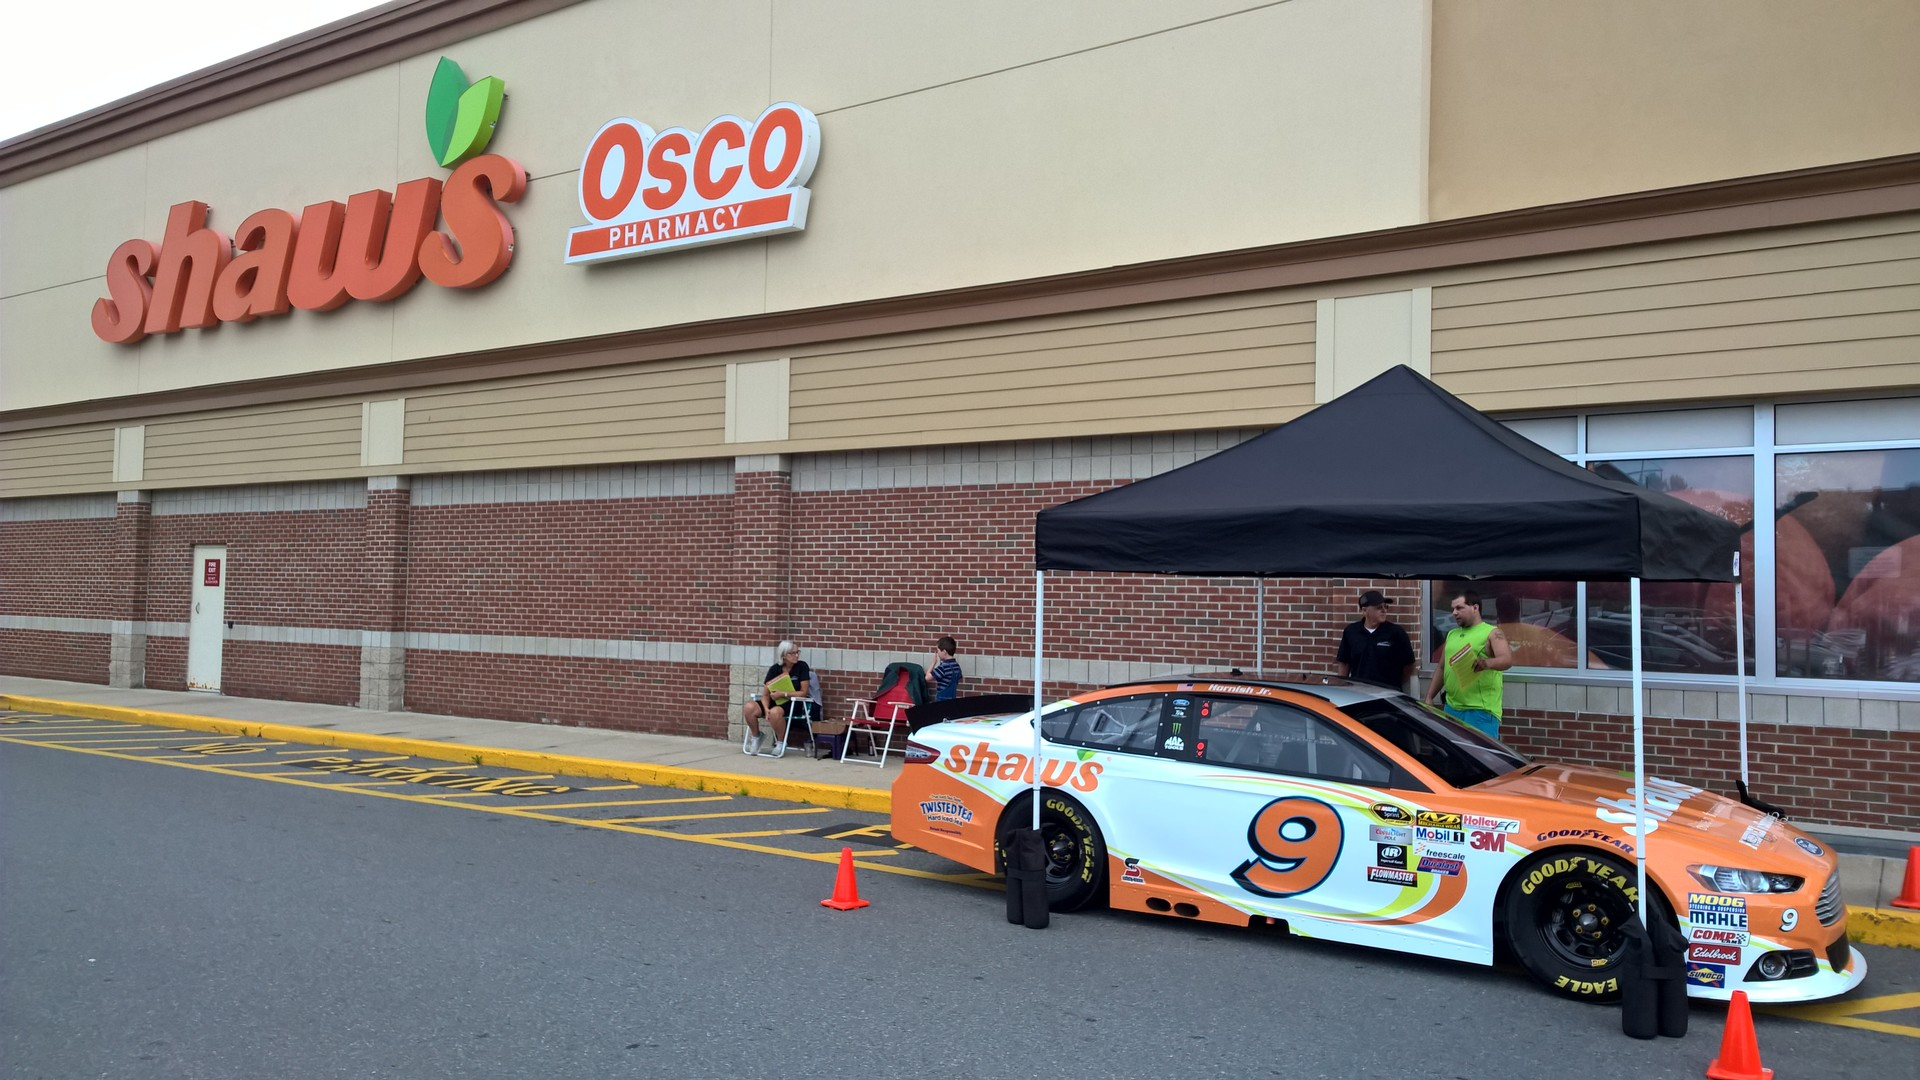 The #9 Shaw's Supermarkets Ford Fusion on display during an appearance event at Shaw's of Concord, New Hampshire on July 18th, 2015.